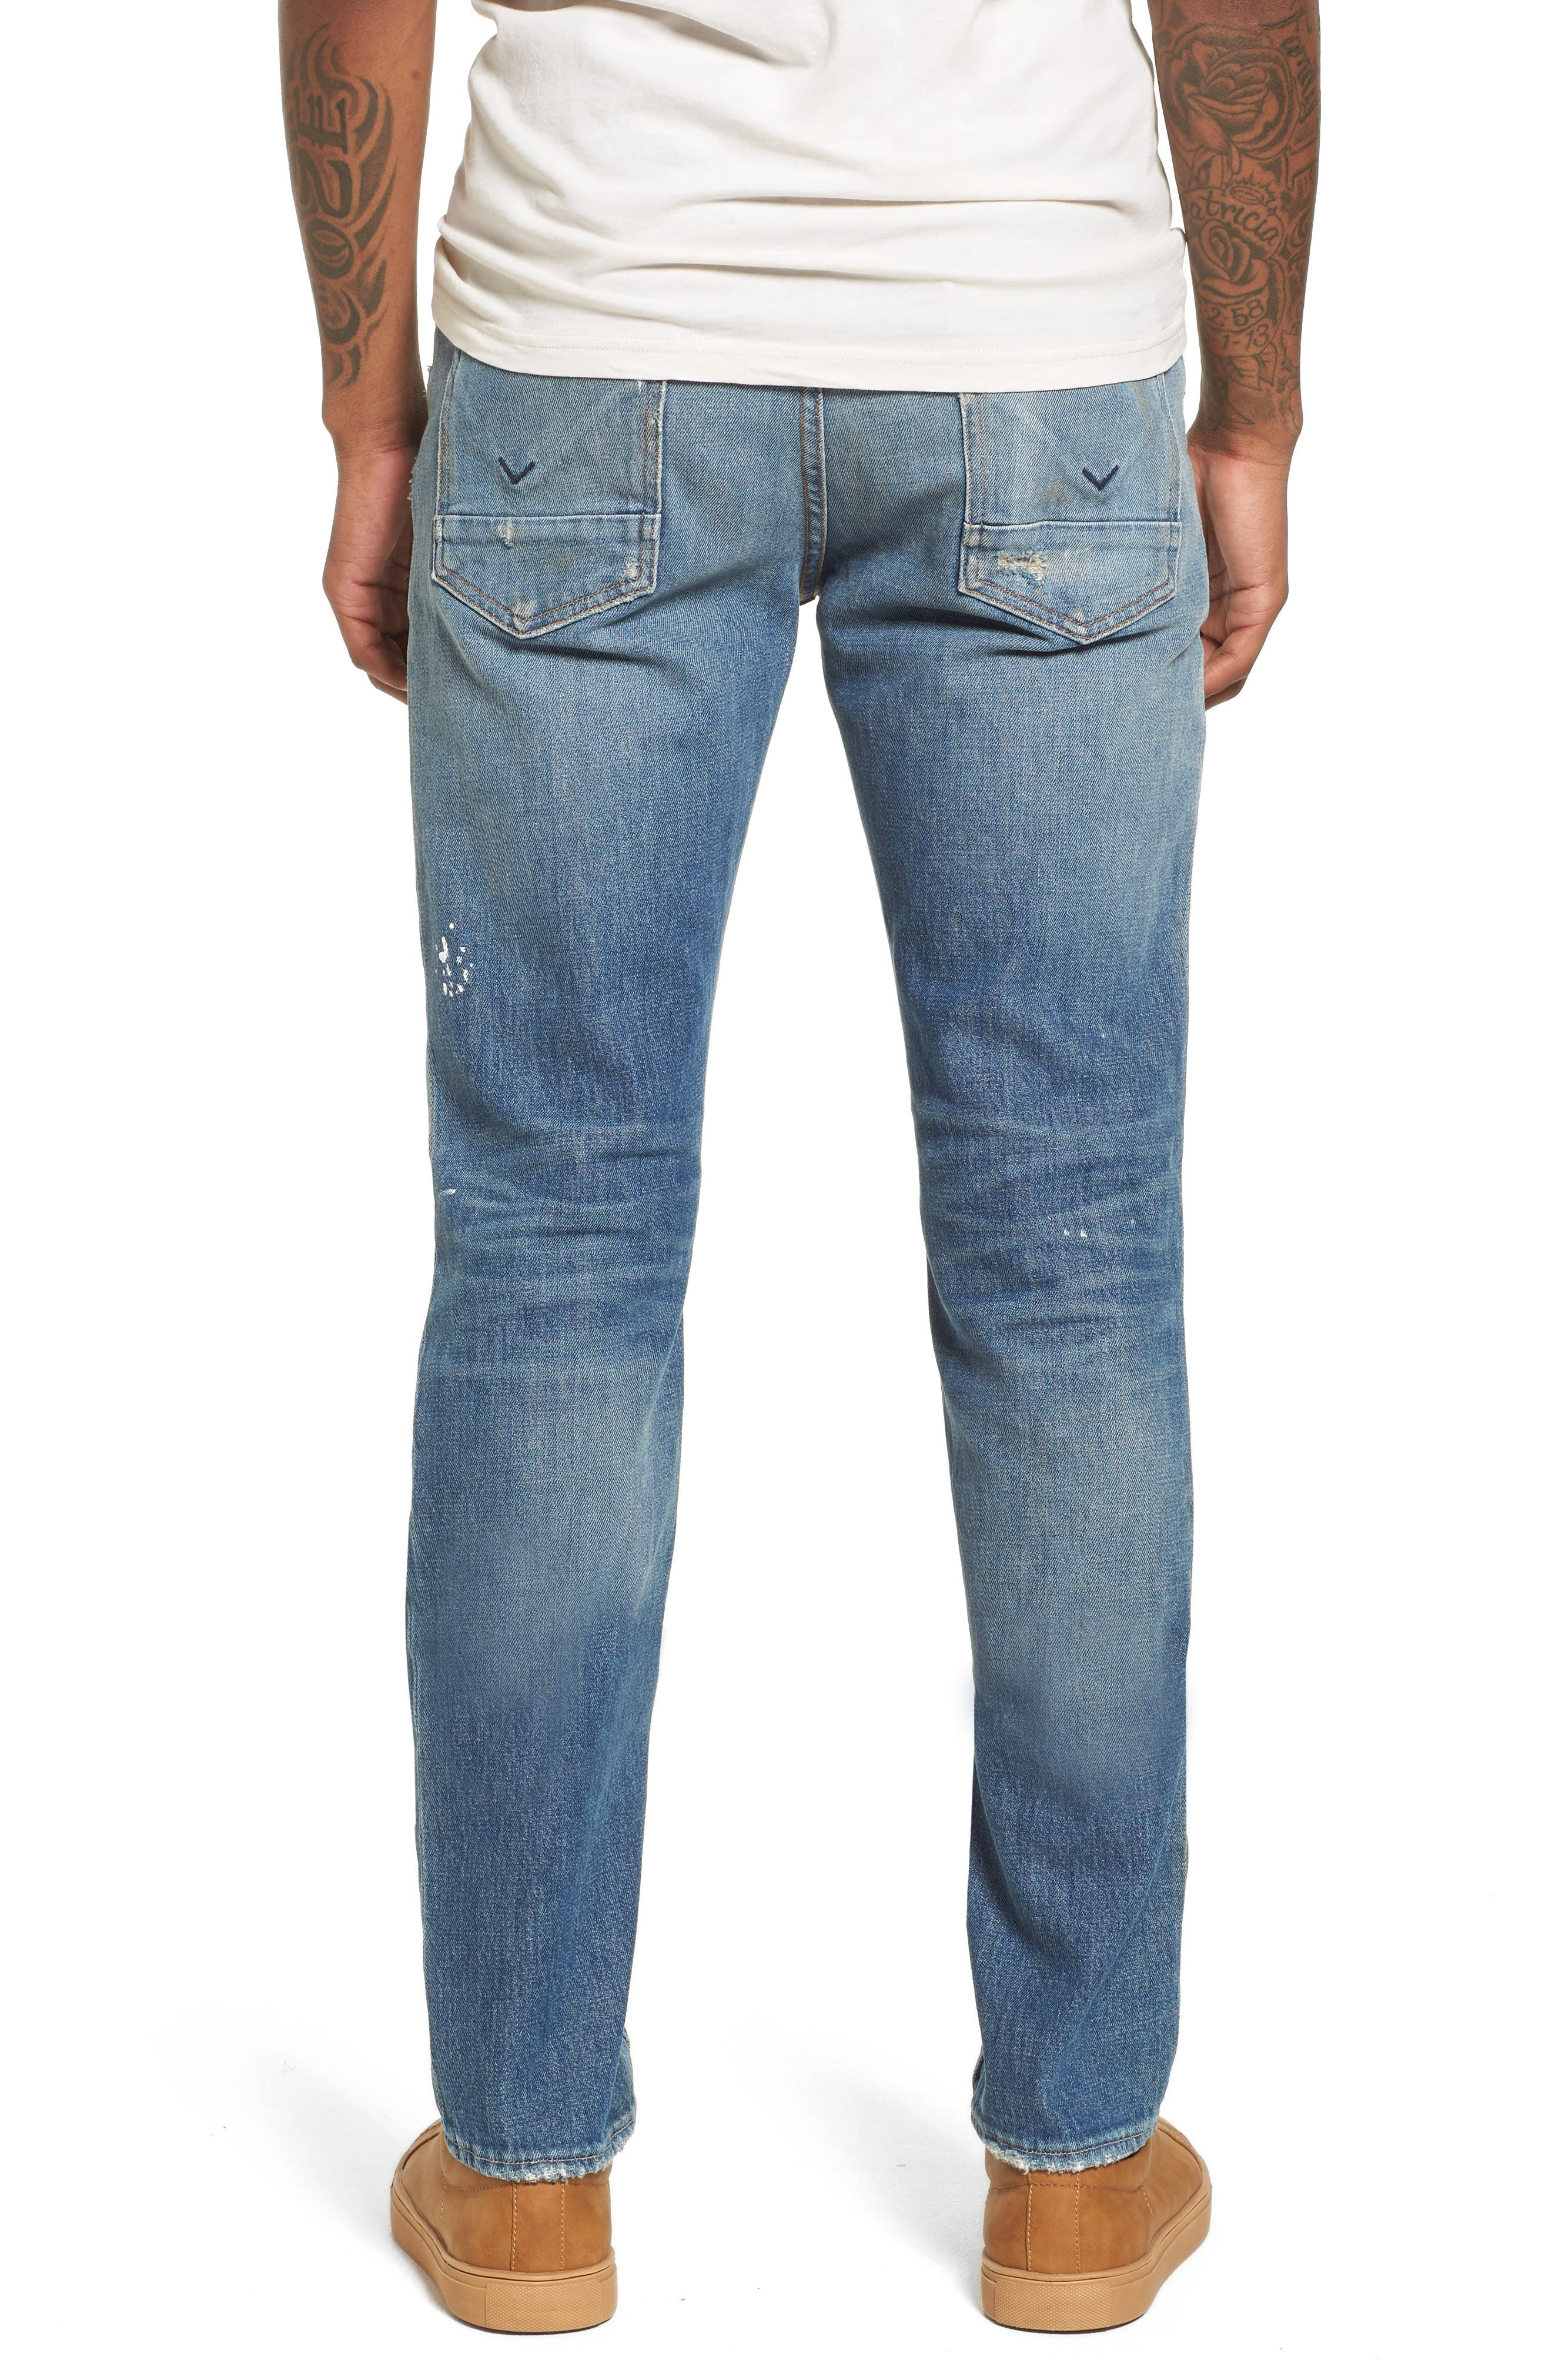 Axl Skinny Fit Jeans,                             Alternate thumbnail 2, color,                             450